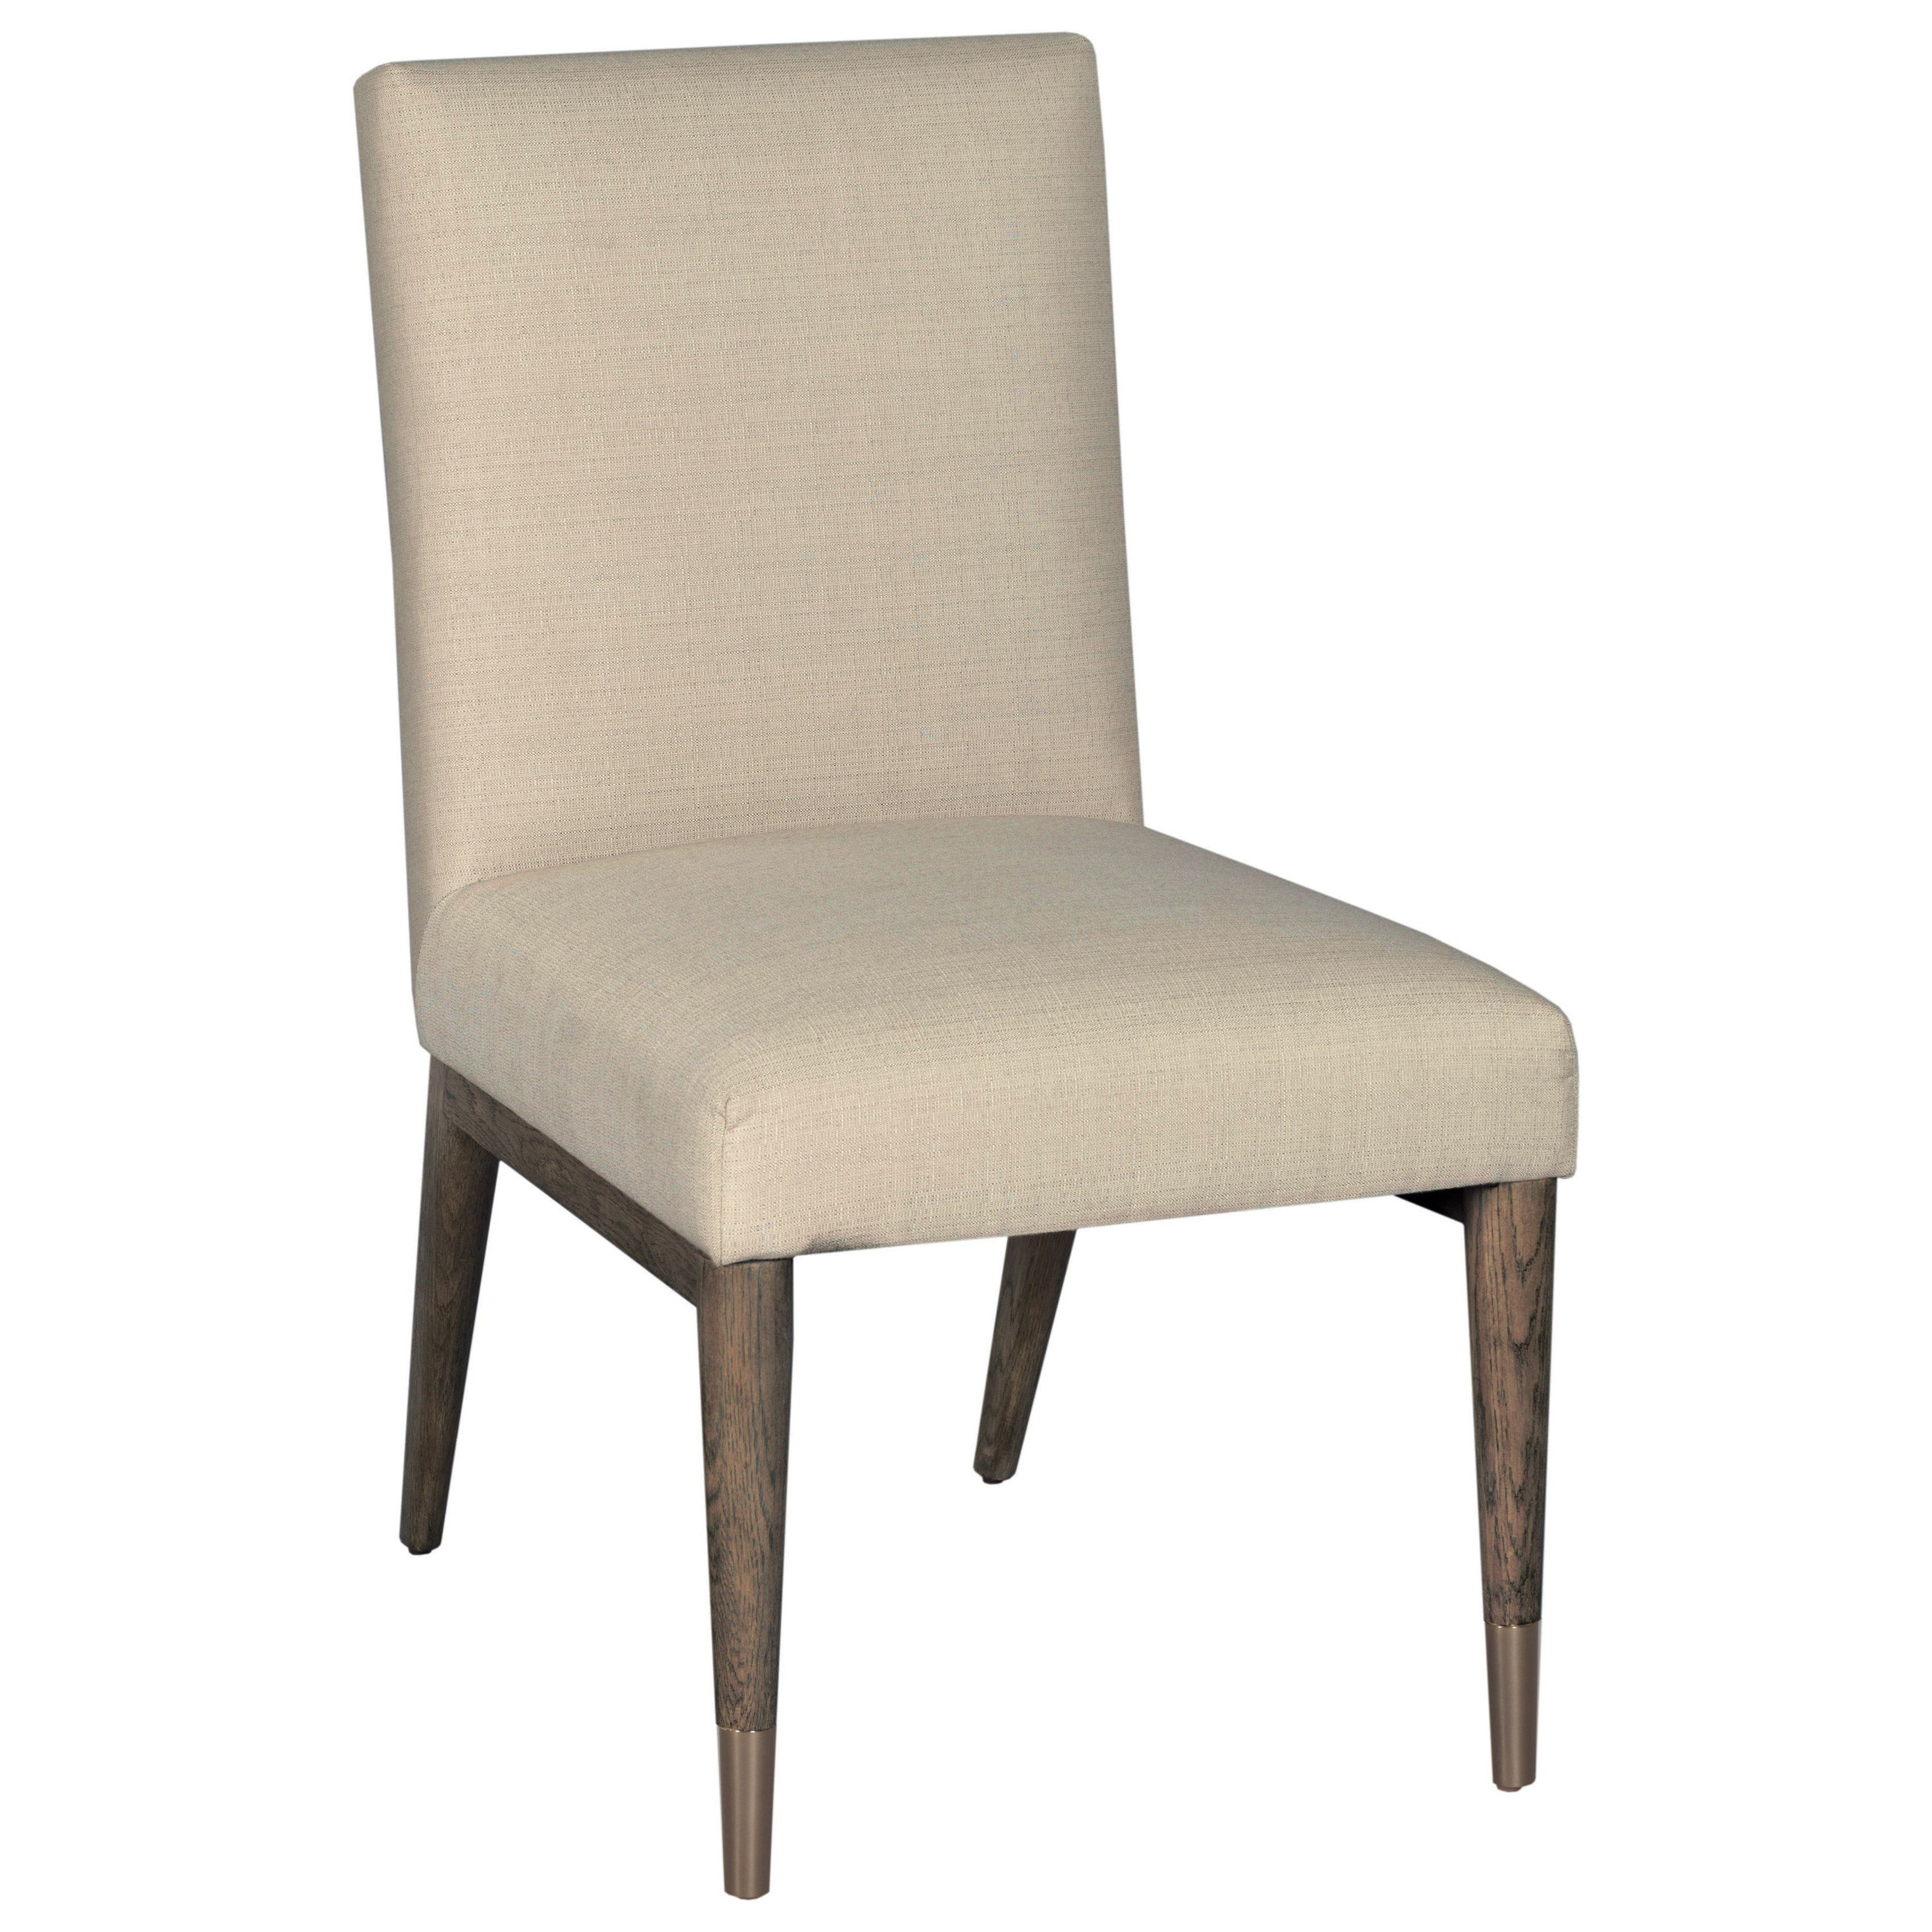 American Drew Ad Modern Classics Upholstered Shelby Dining Side Chair - Item Number: 603-636